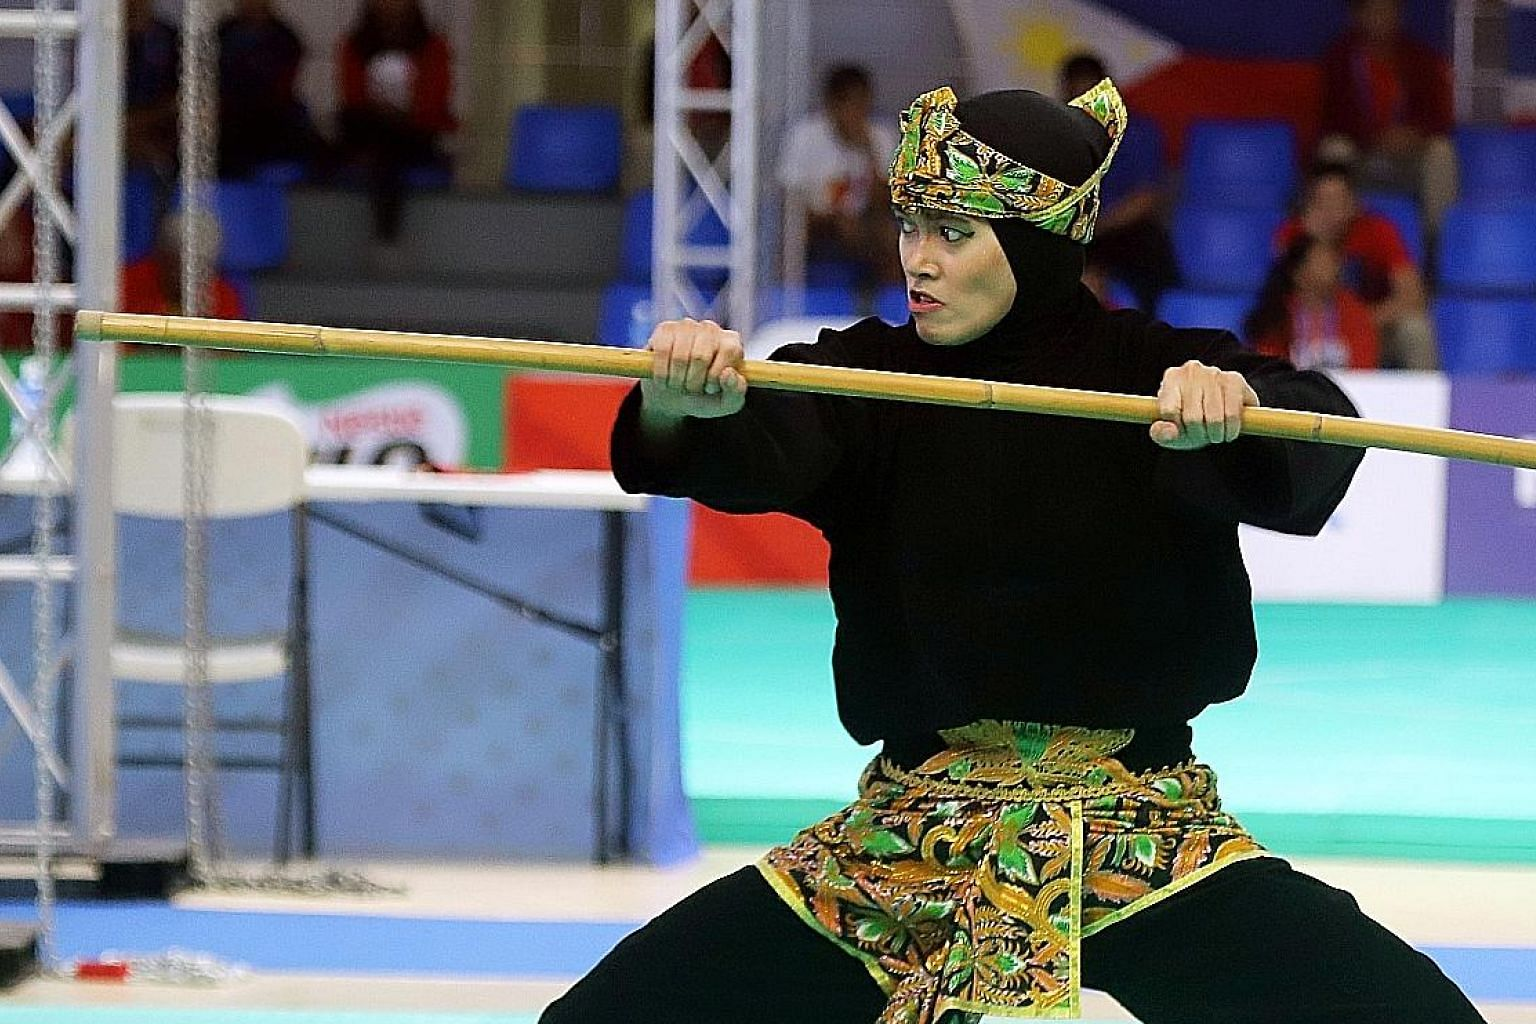 """Indonesia's Puspa Arum Sari competing last week in a women's pencak silat event at the SEA Games held in the Philippines. Unesco says the sport contains """"mental-spiritual, self-defence and artistic aspects""""."""